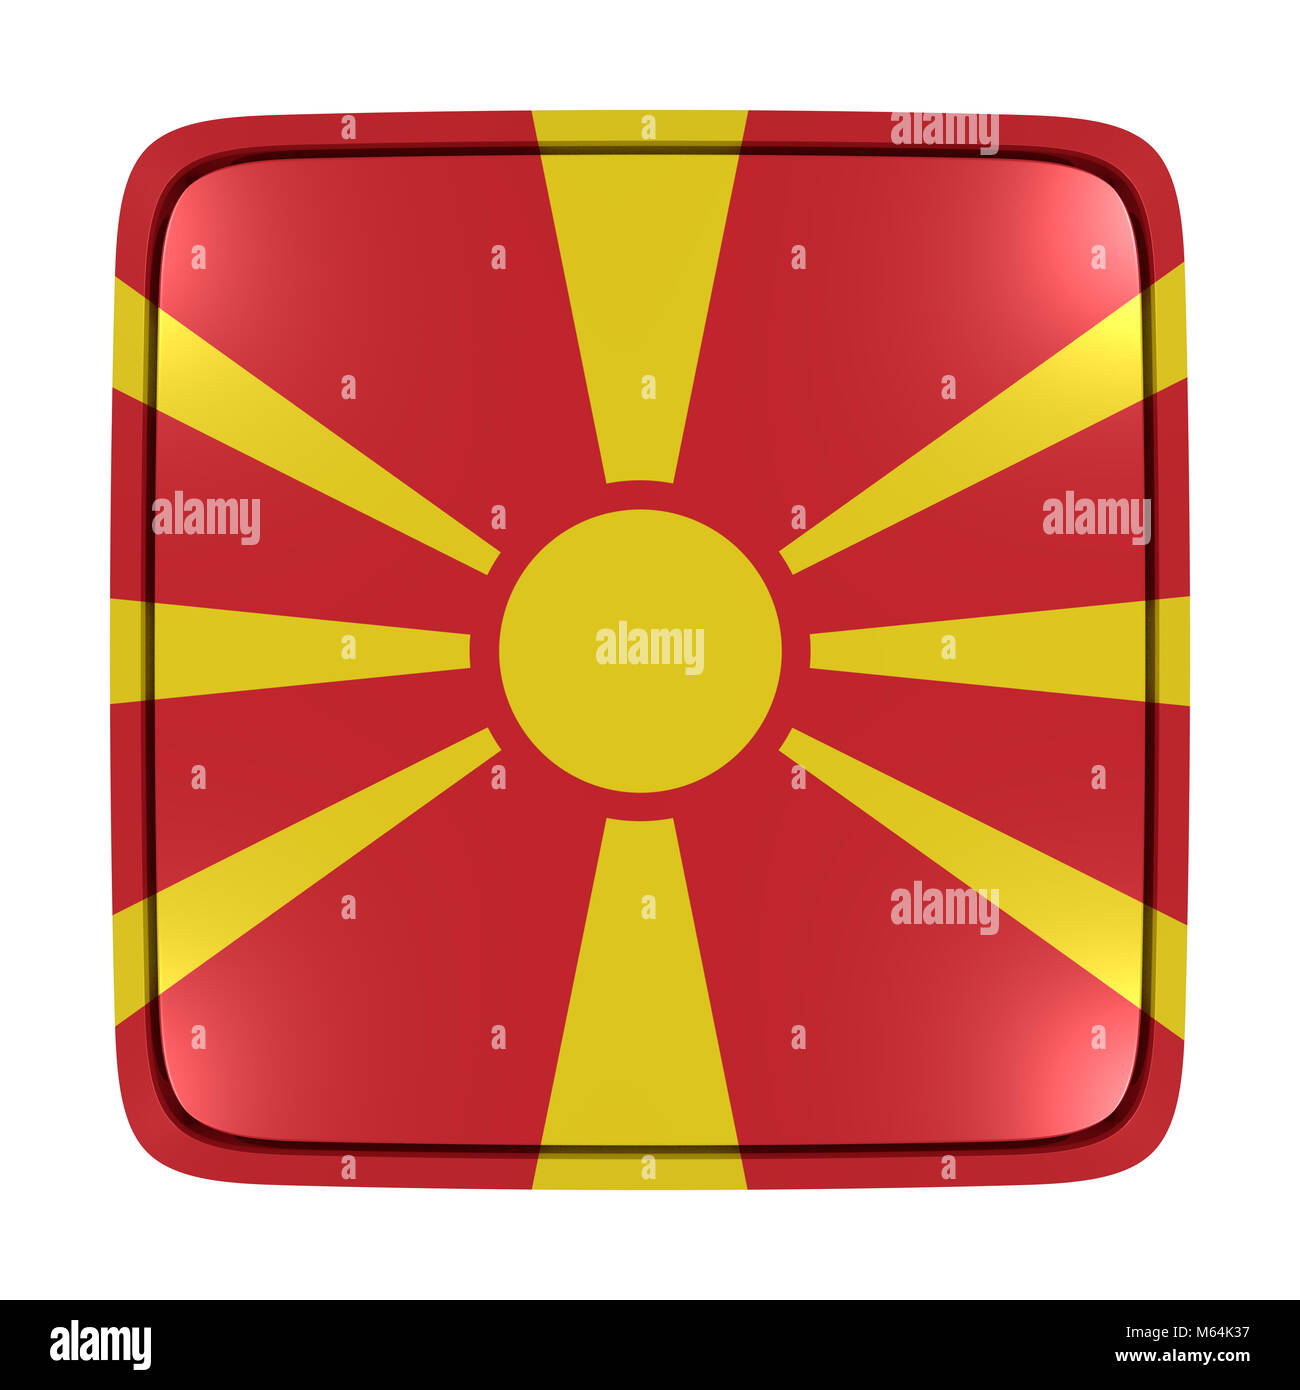 3d rendering of a Macedonia flag icon. Isolated on white background. - Stock Image